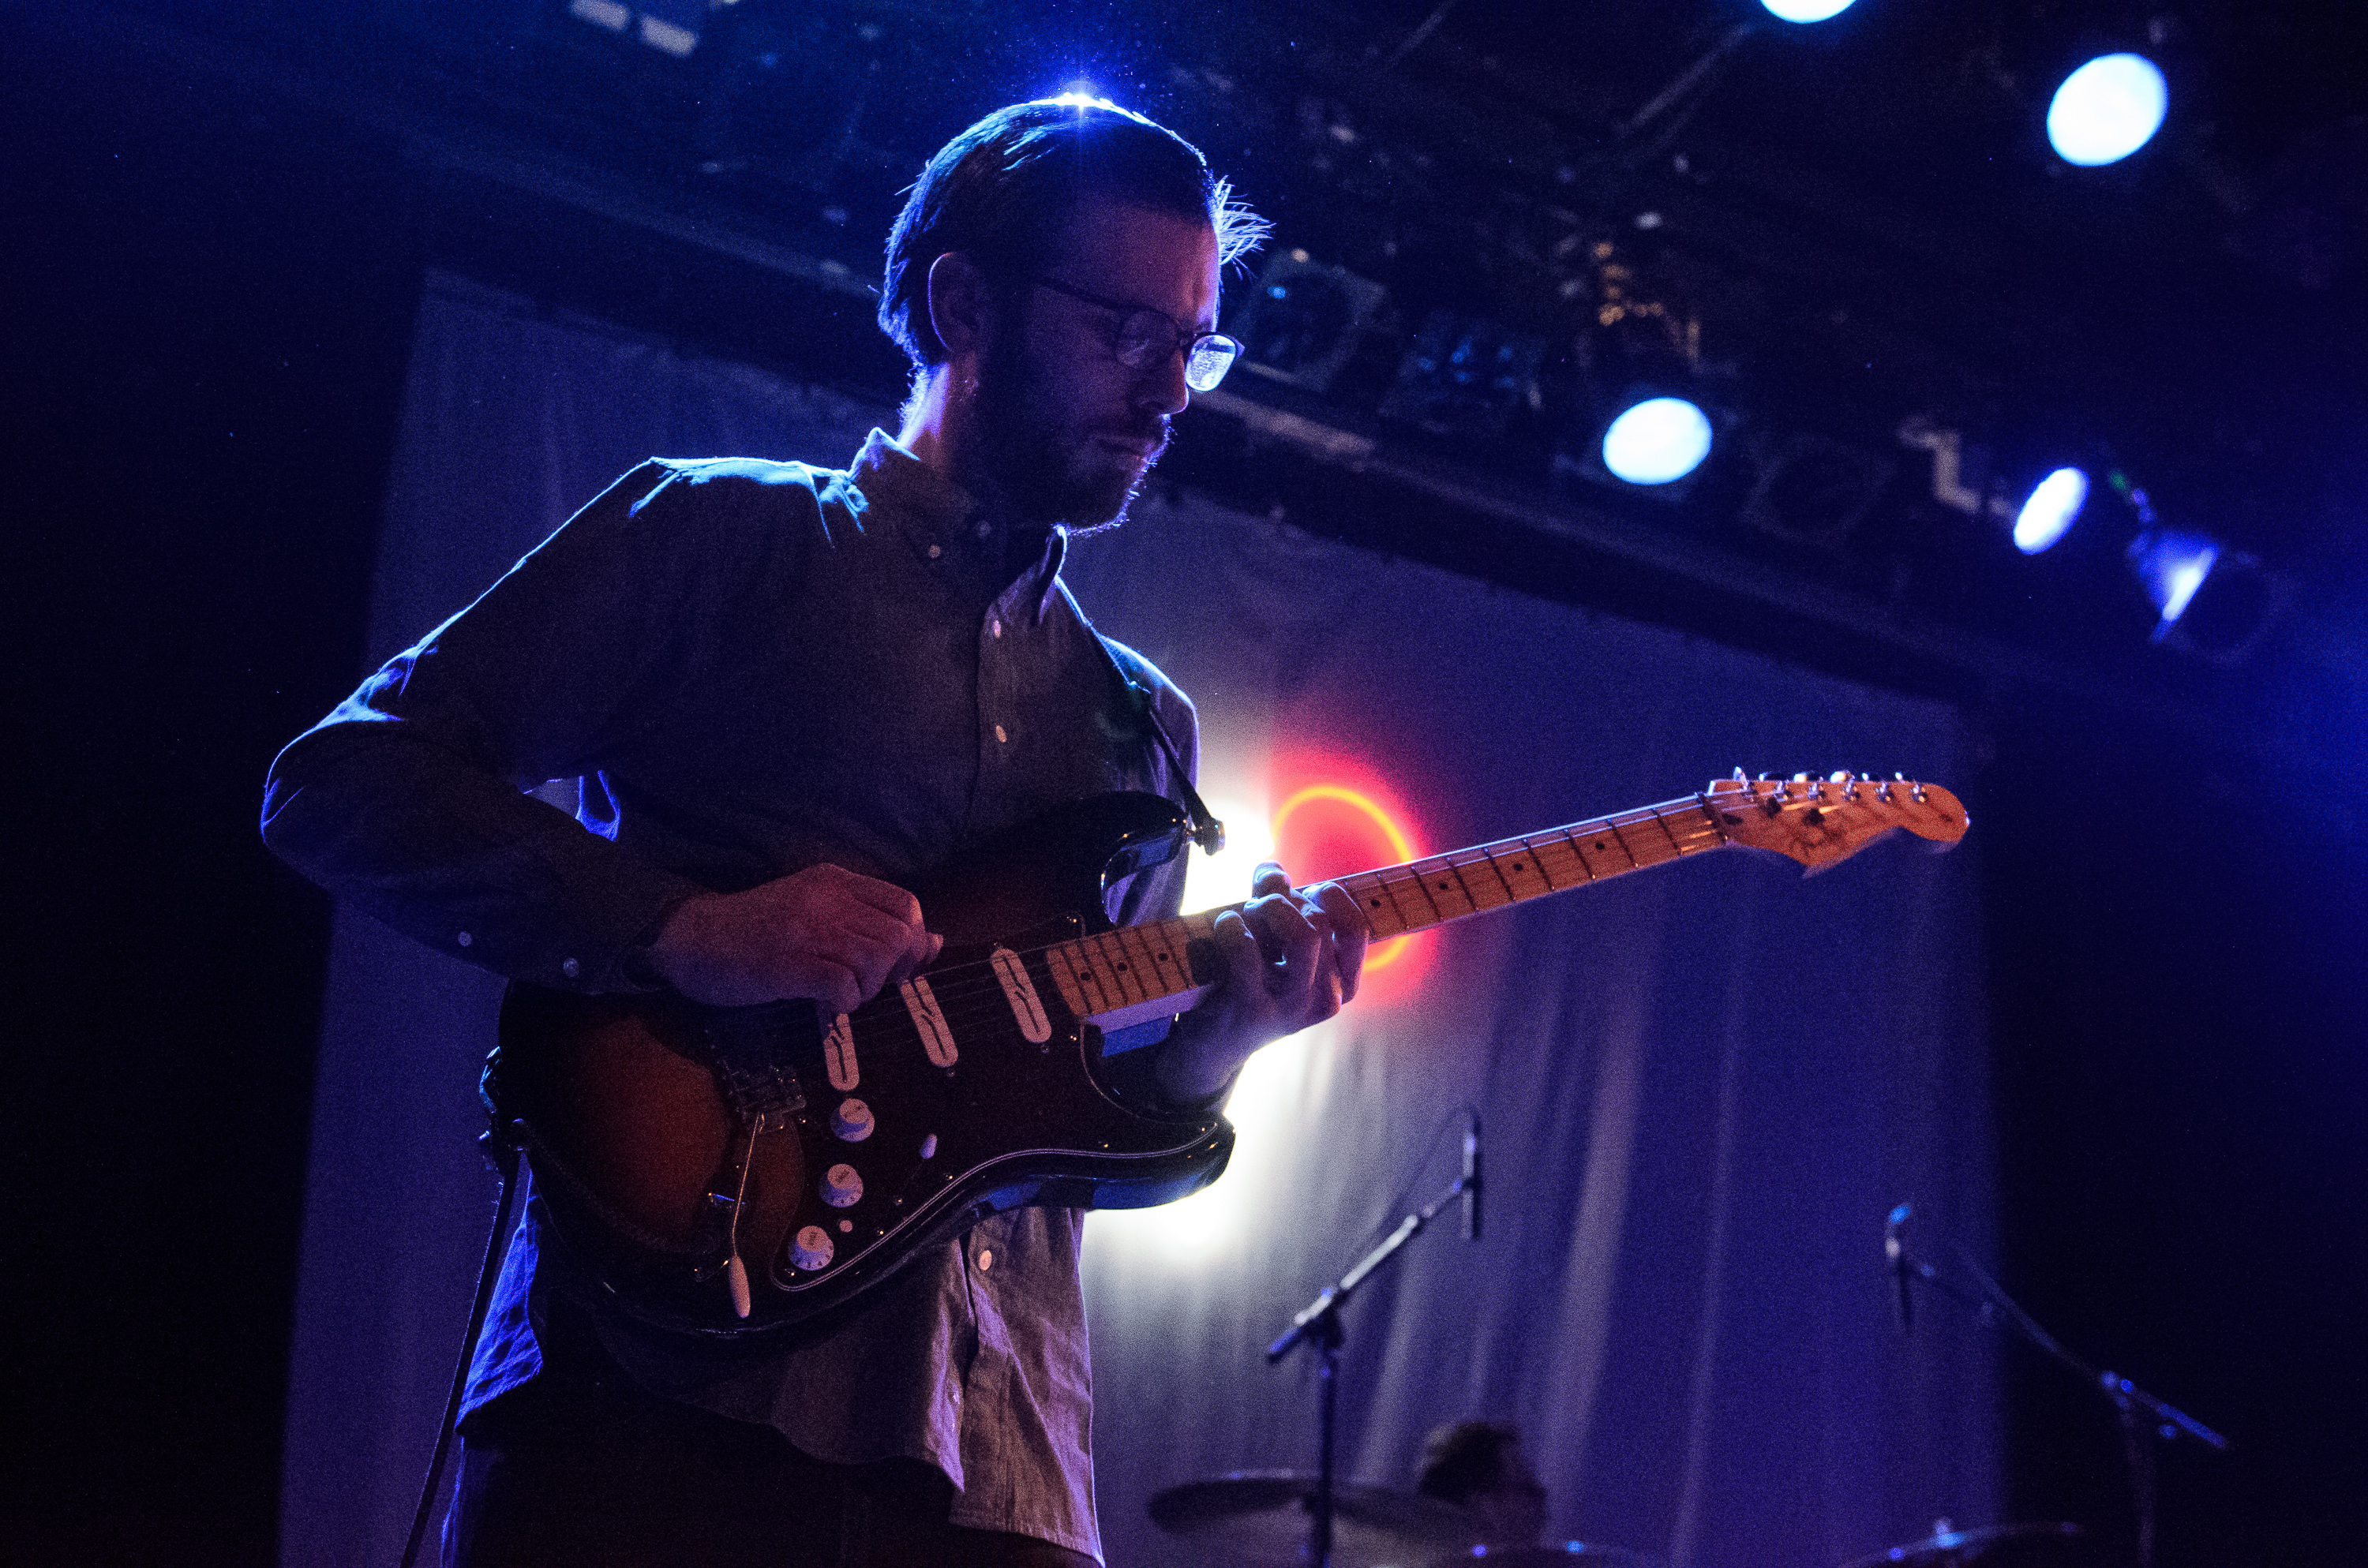 Lucy Dacus guitarist Jacob Blizard, photo by Ben Kaye